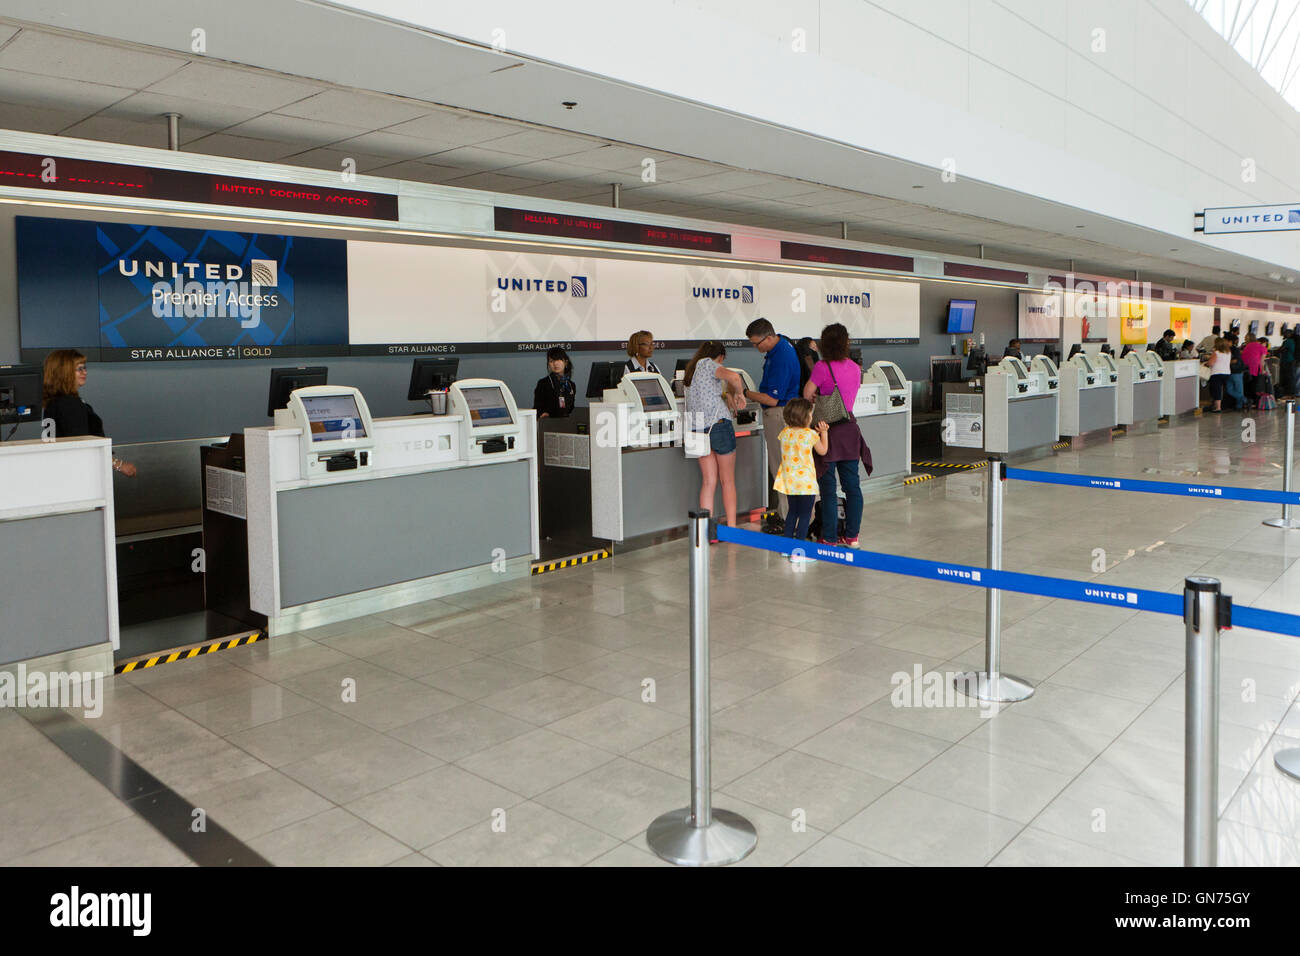 United Airlines Ticket Counter At Bwi International